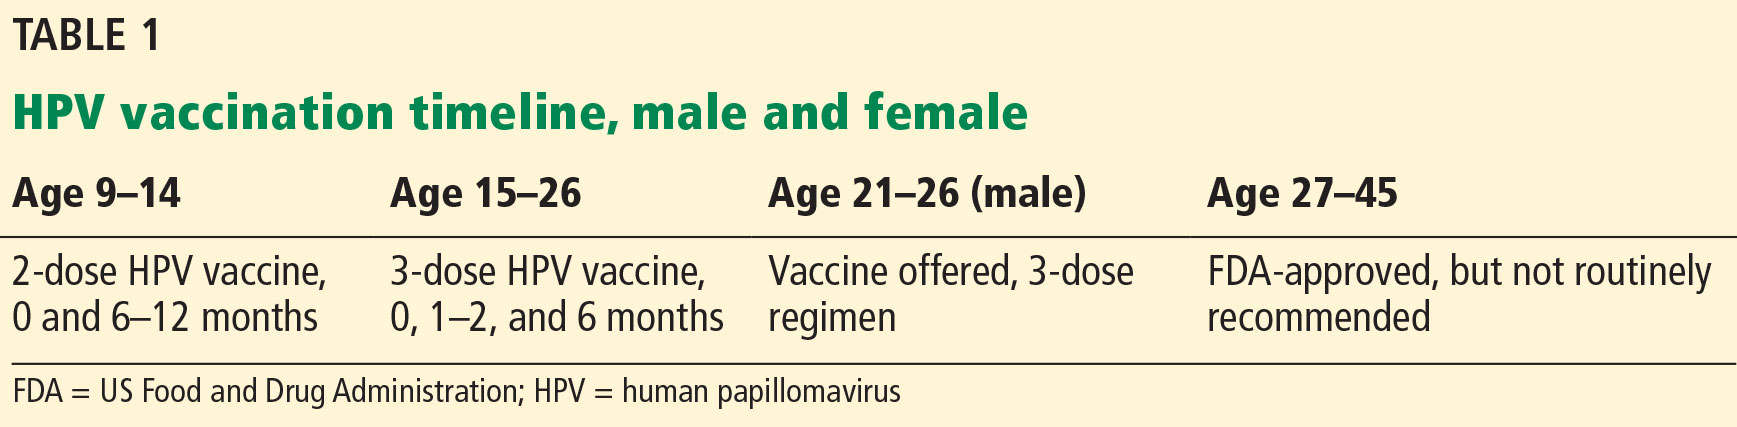 Hpv vaccine guidelines age, Management in Health, Vol 17, No 2 (2013)